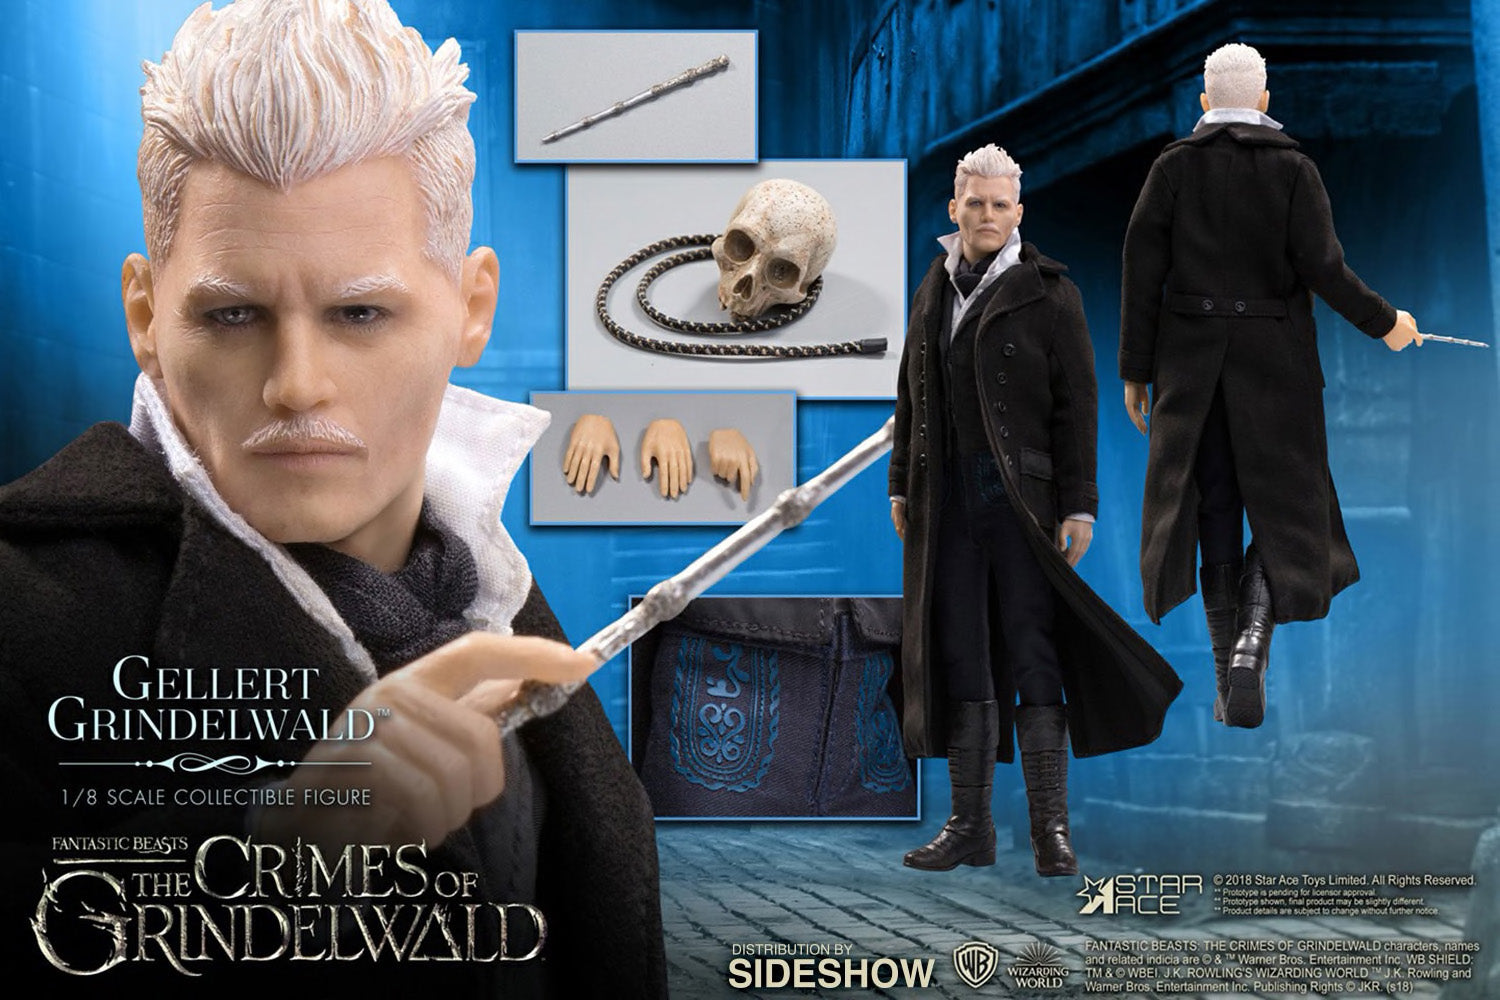 Star Ace Toys - Fantastic Beasts: The Crimes of Grindelwald - Gellert Grindelwald (1/8 Scale)